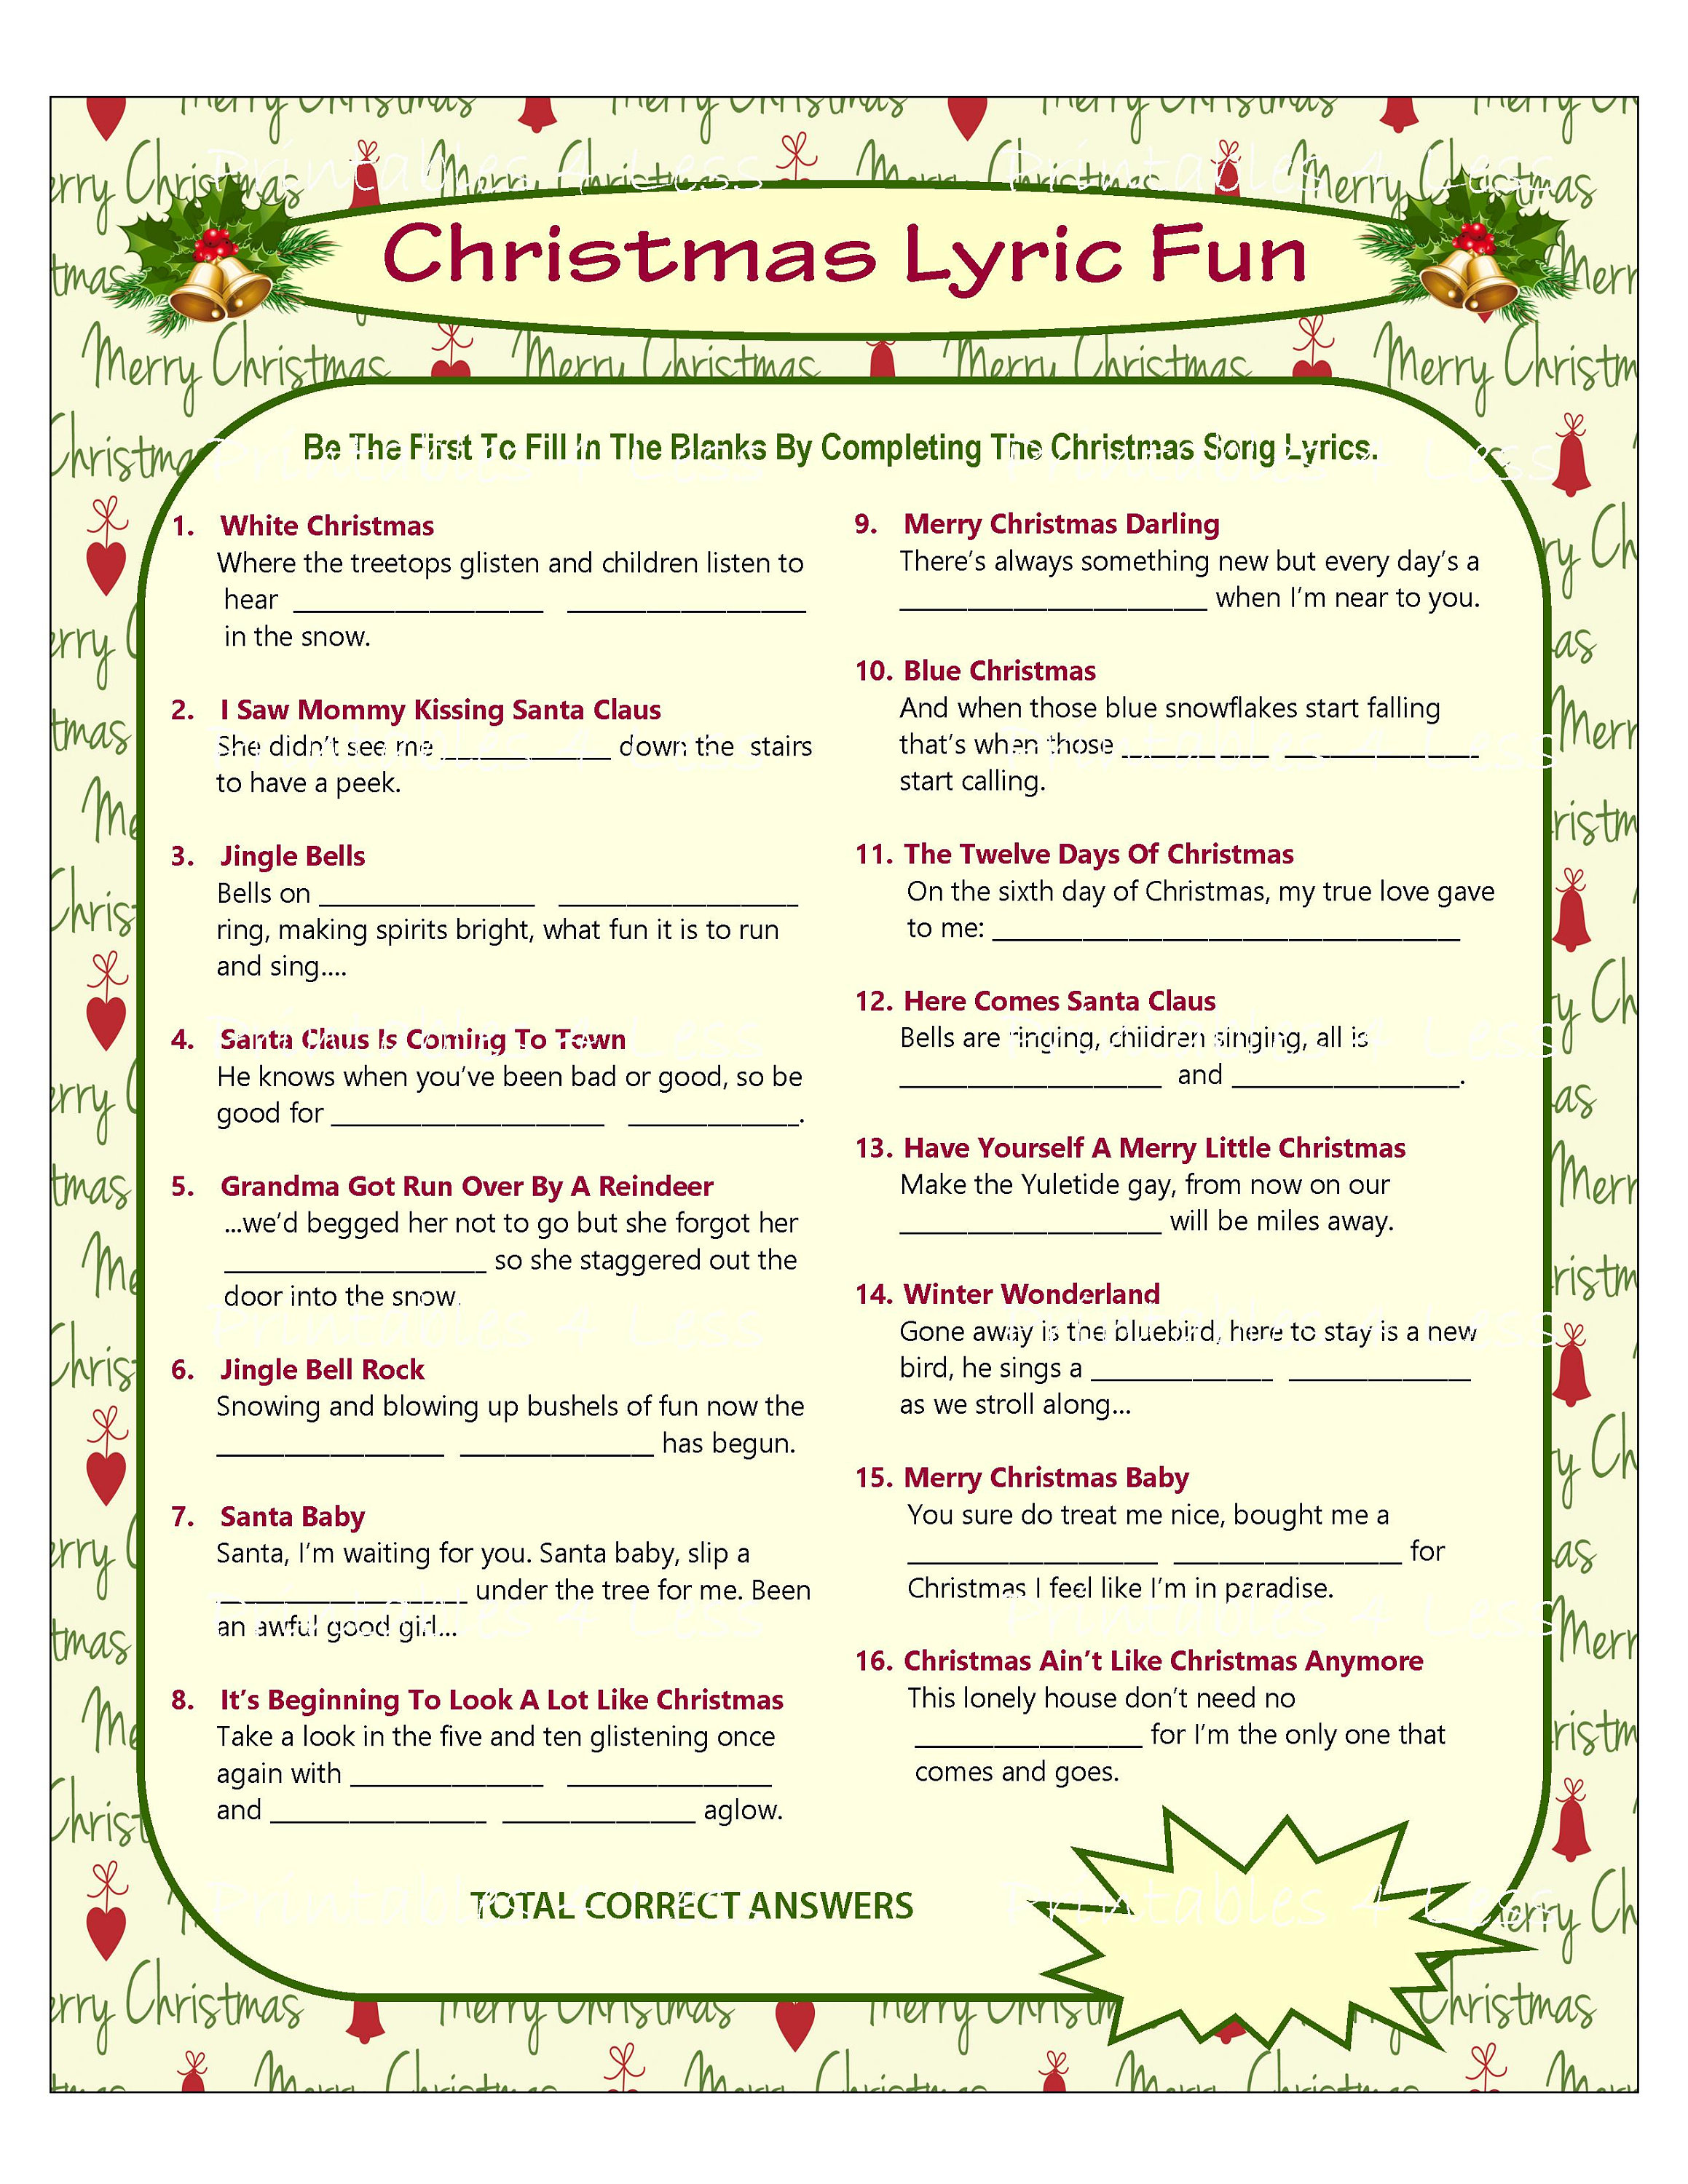 photo regarding Twelve Days of Christmas Lyrics Printable identified as Xmas Track Activity, Xmas Audio Match, Xmas Carol Video game, Printable Xmas Game titles, Do-it-yourself Getaway Video games, Christmas - Printables 4 Much less